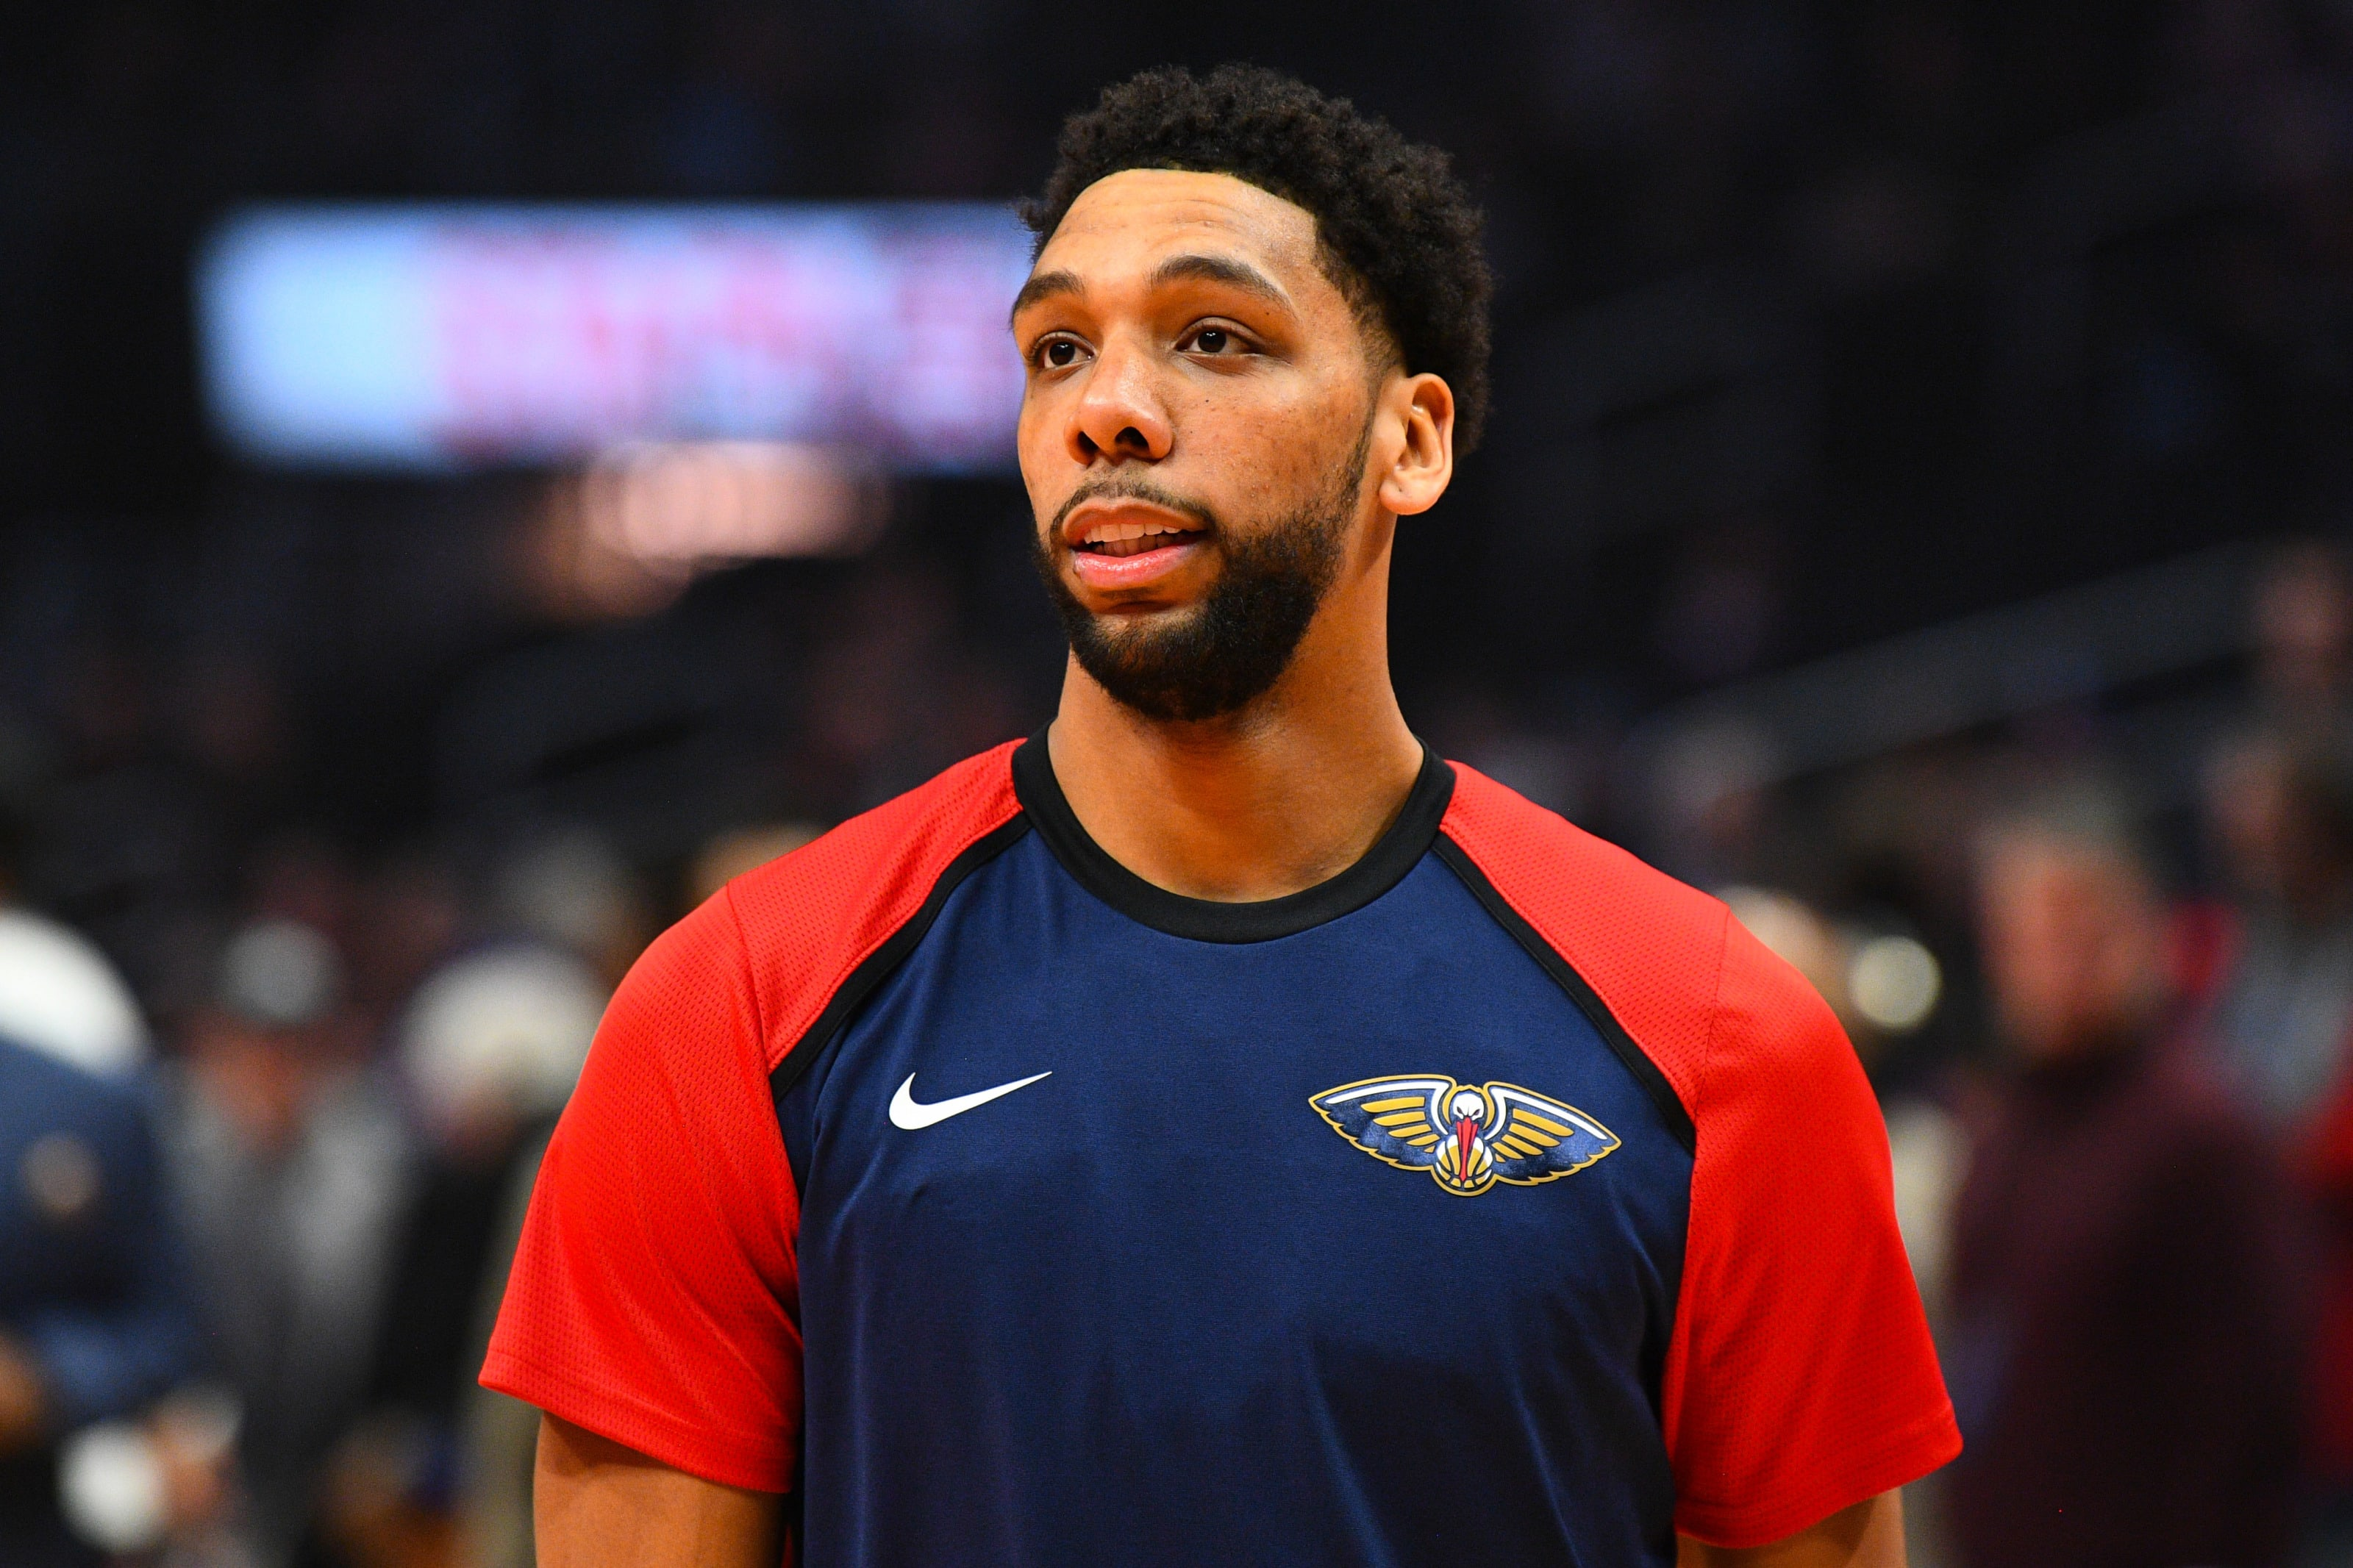 New Orleans Pelicans, Jahlil Okafor